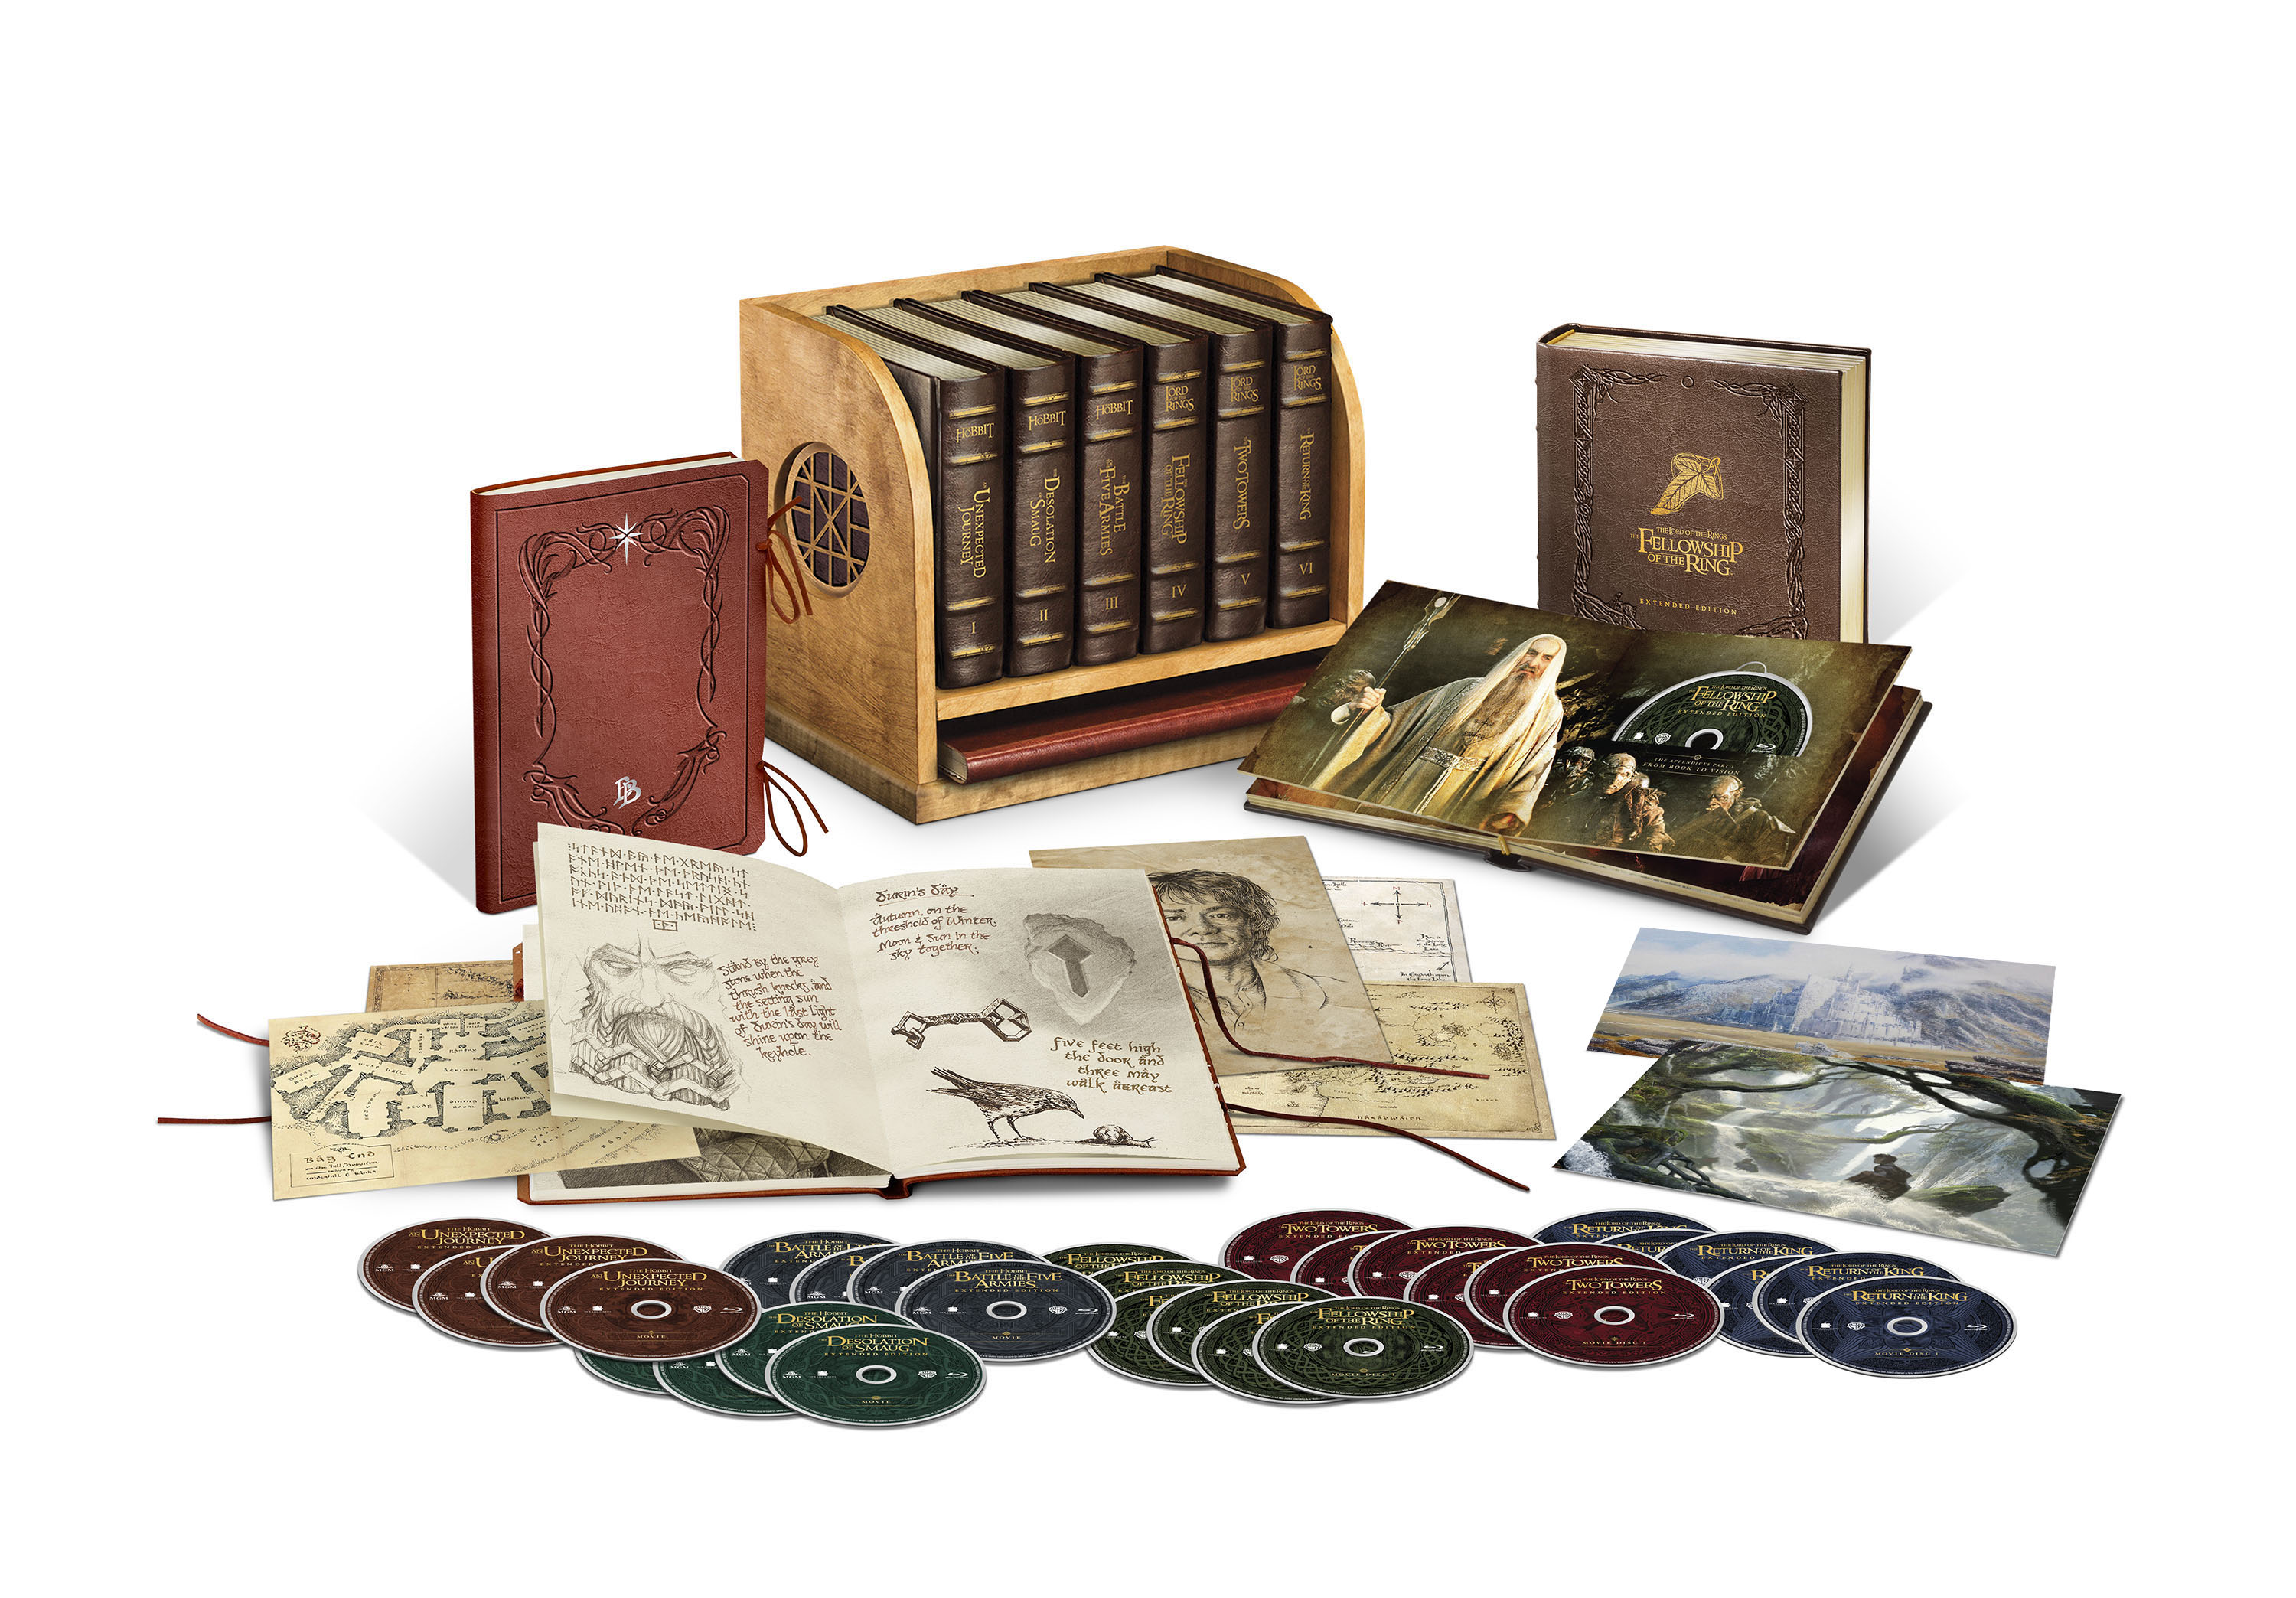 The Middle-Earth 6-Film Limited Collector's Edition